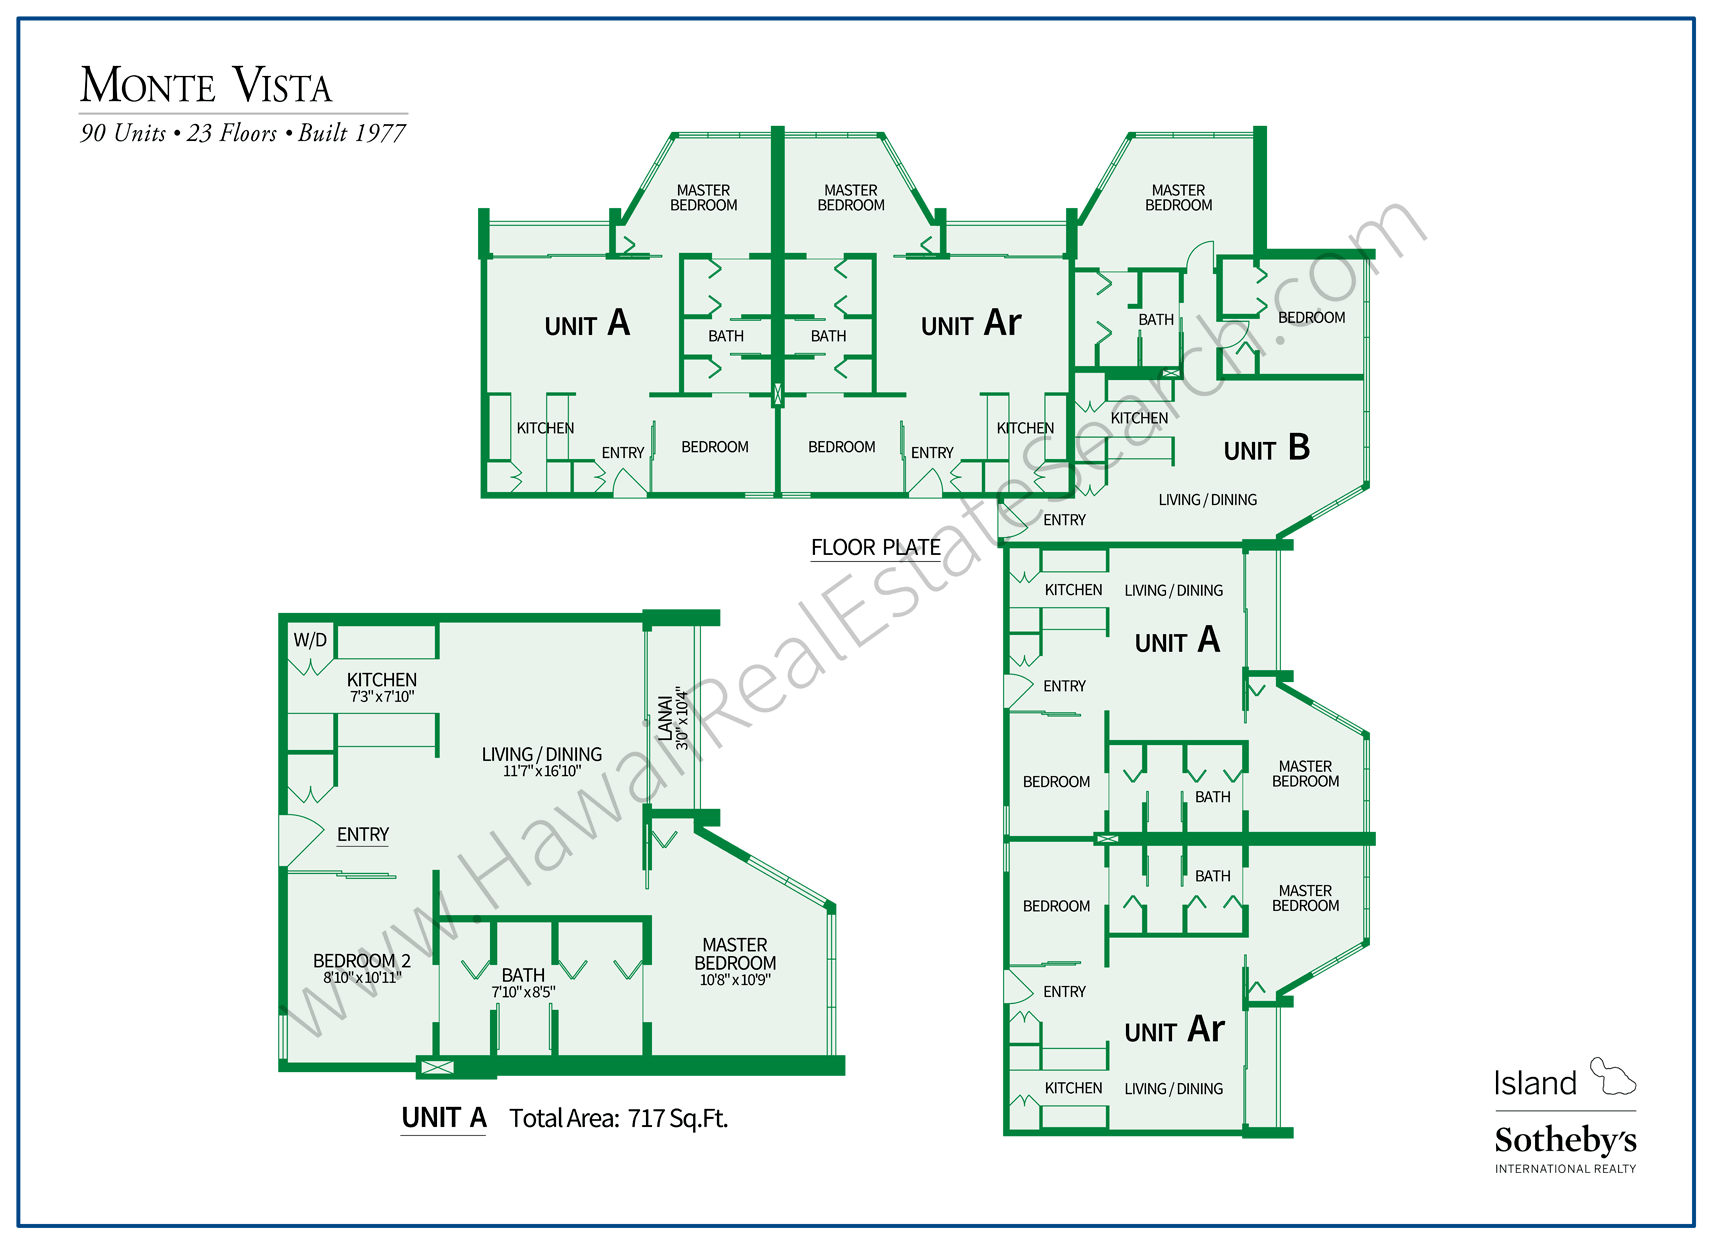 Monte Vista Property Map